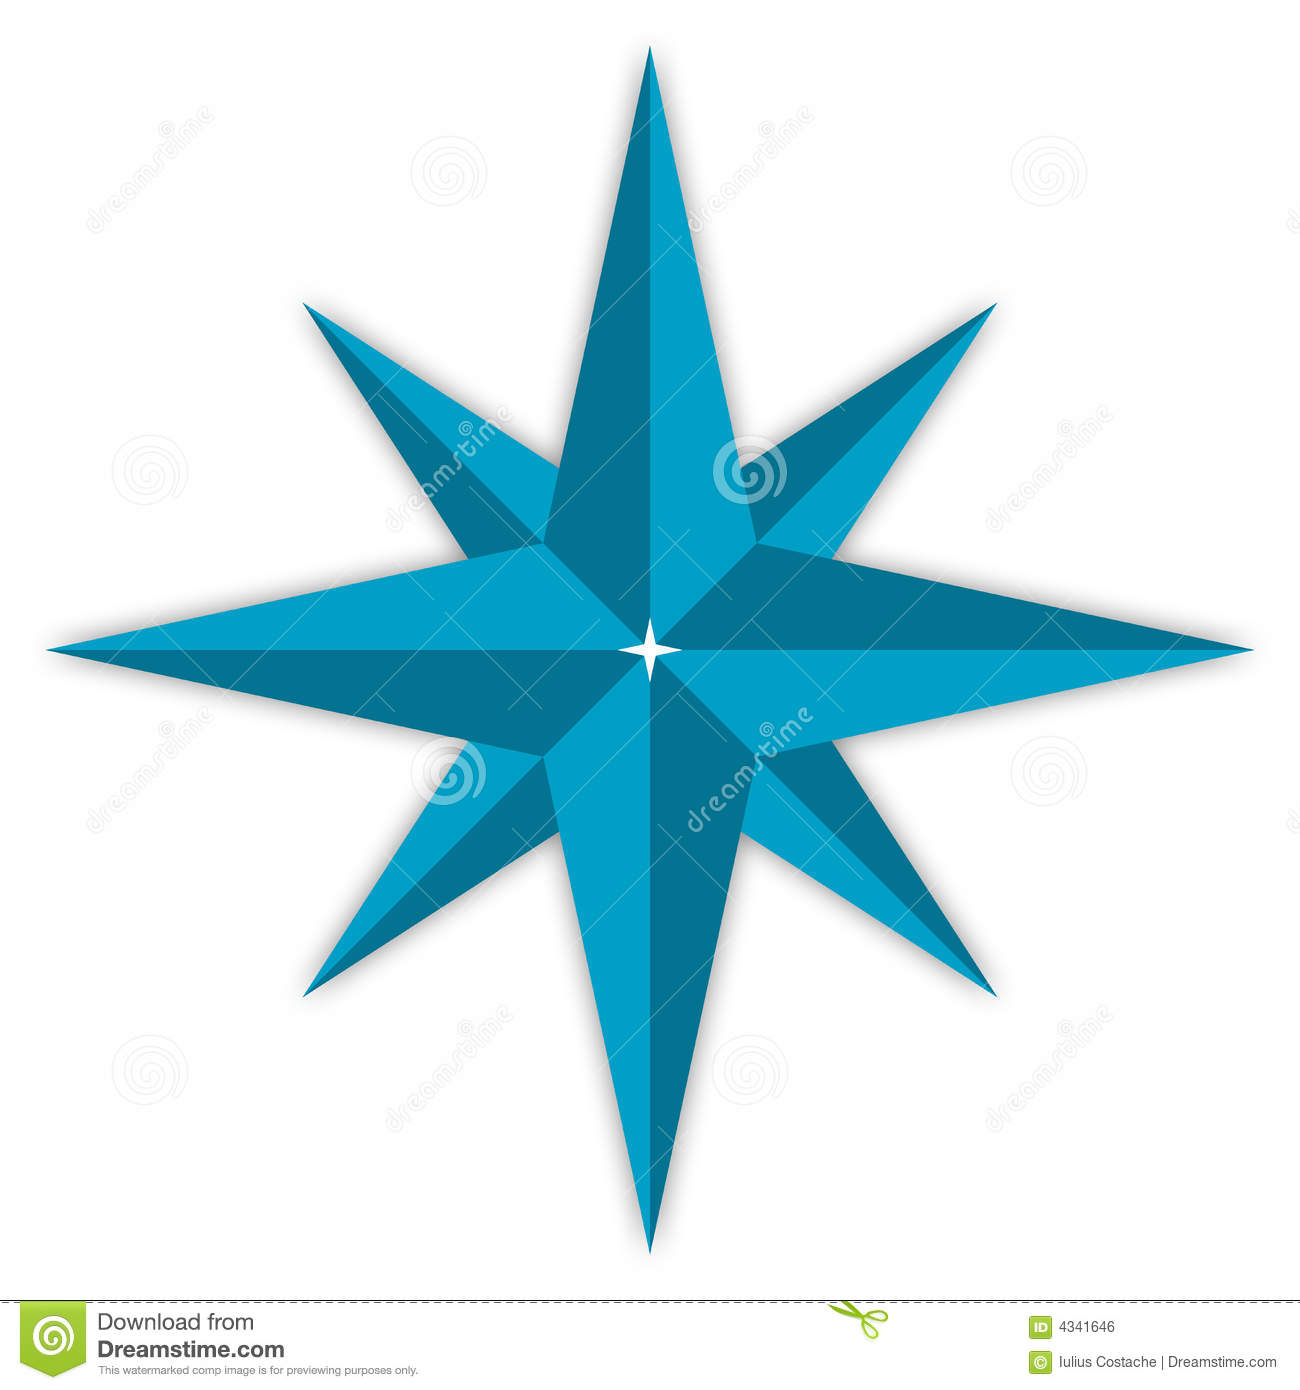 Compass Star Royalty Free Stock Image - Image: 4341646